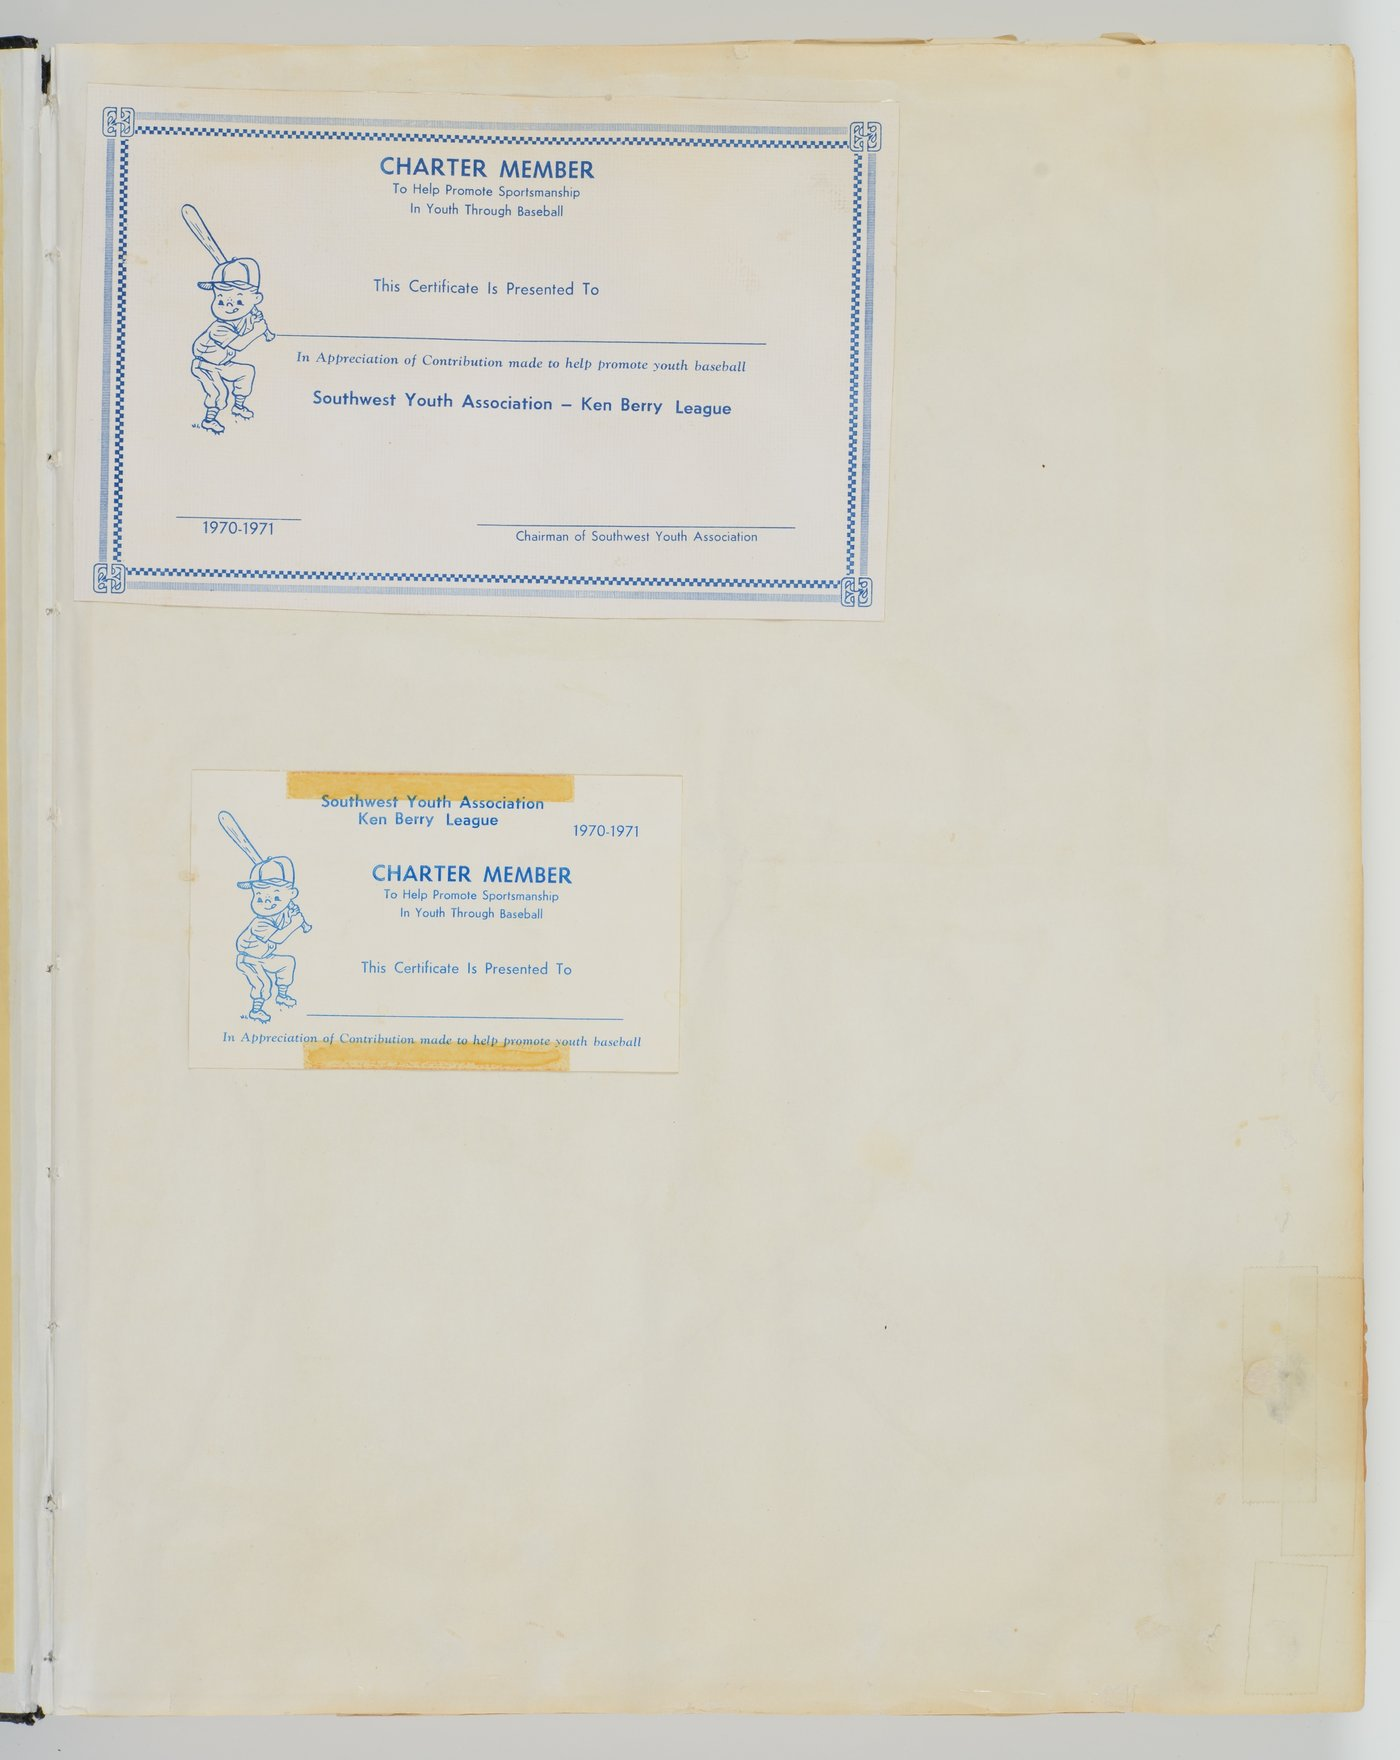 Ken Berry Baseball League and Southwest Youth Athletic Association, Inc. scrapbook - Soutwest Youth Association, (1970-1971)